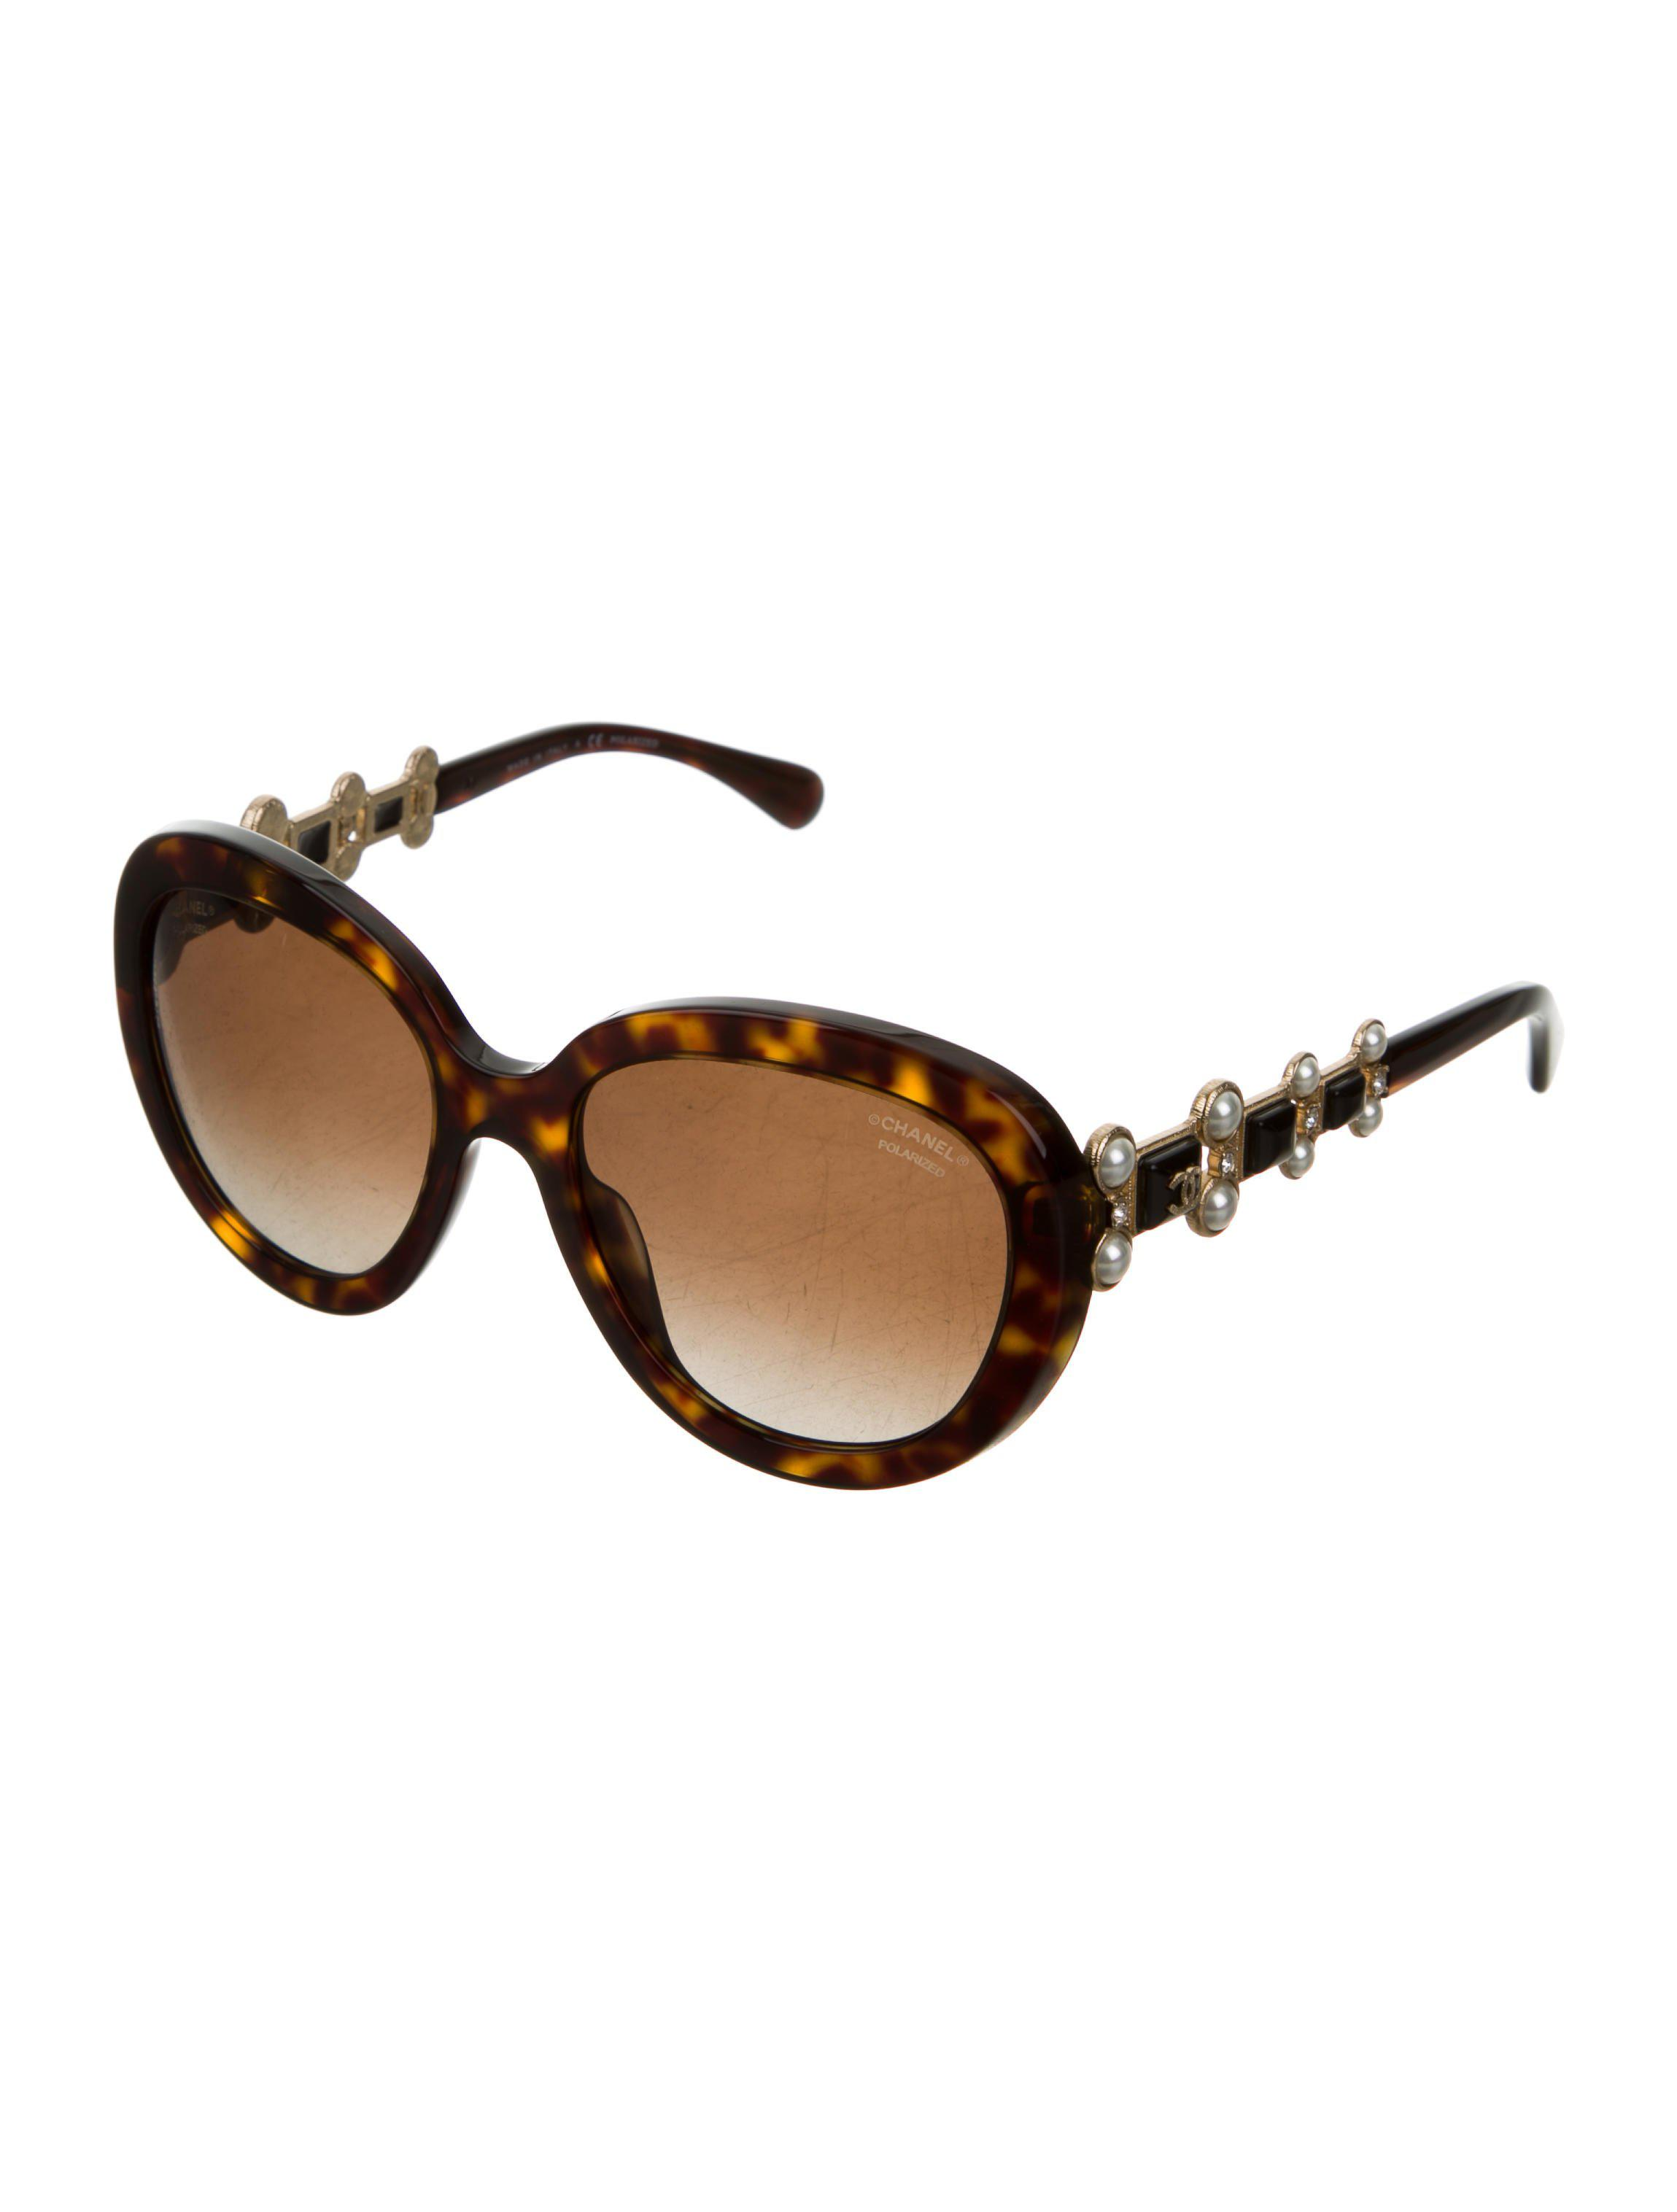 8a880034e0036 Chanel - Metallic Bijou Polarized Sunglasses W  Tags Brown - Lyst. View  fullscreen